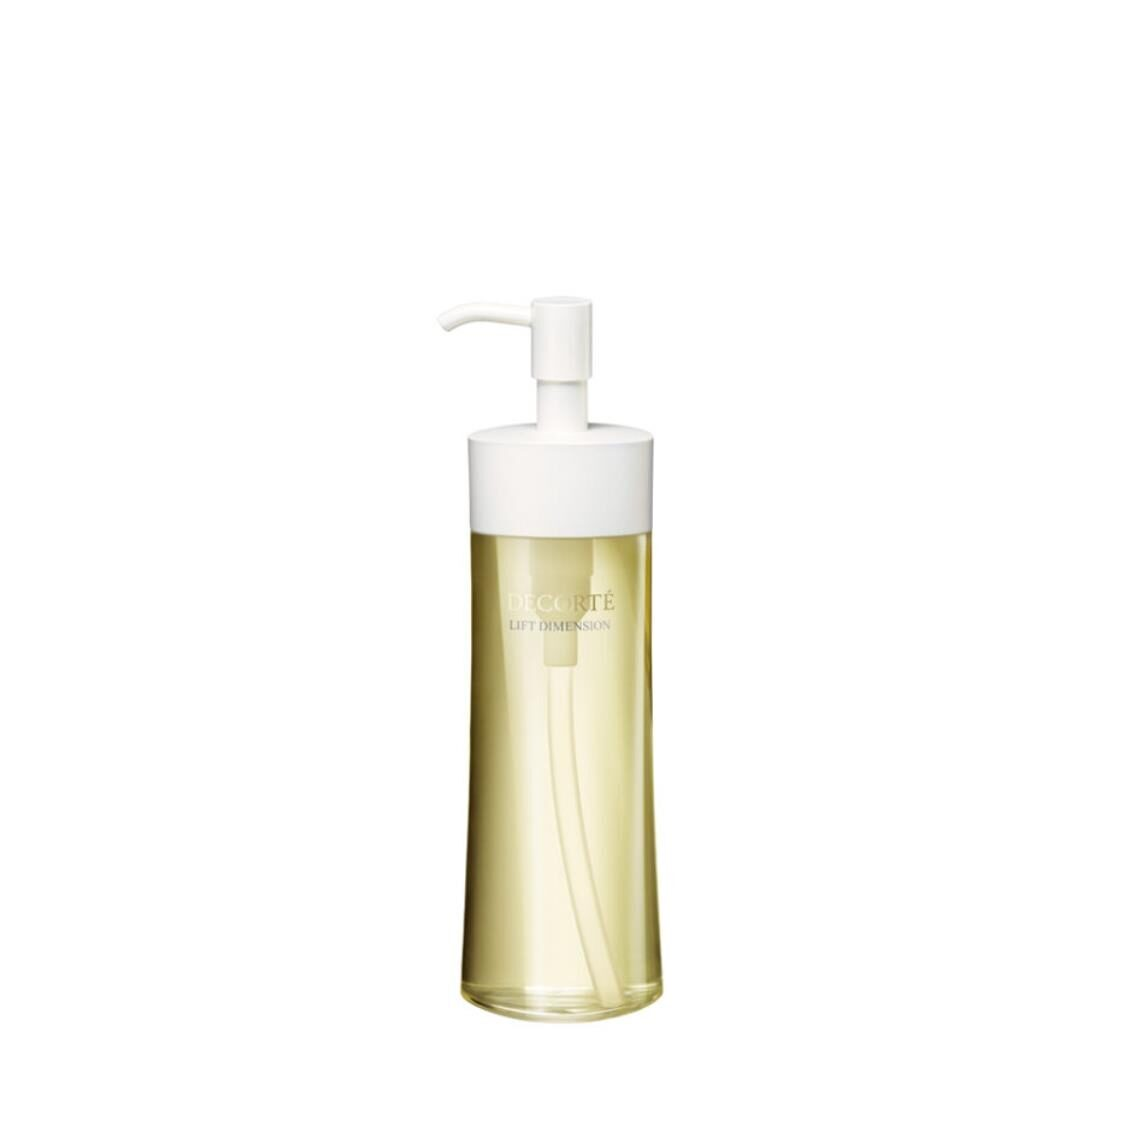 Decorte Lift Dimension Smoothing Cleansing Oil 200ml